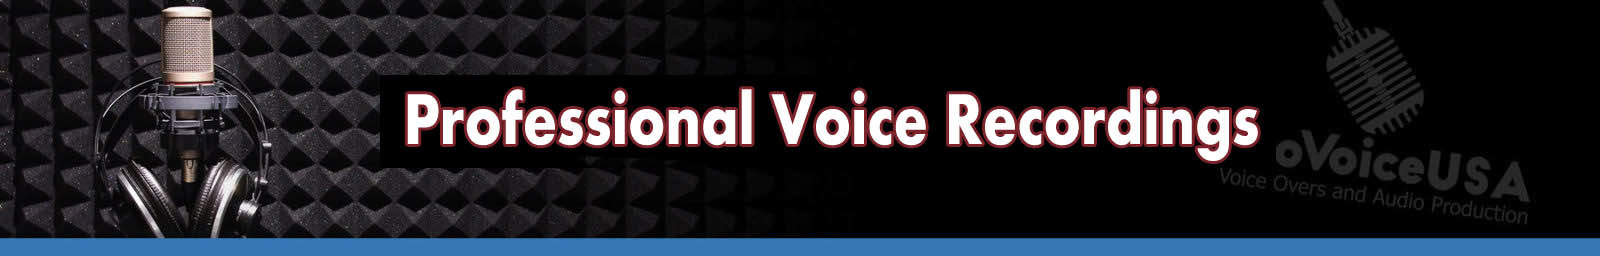 Professional Voice Recordings Header